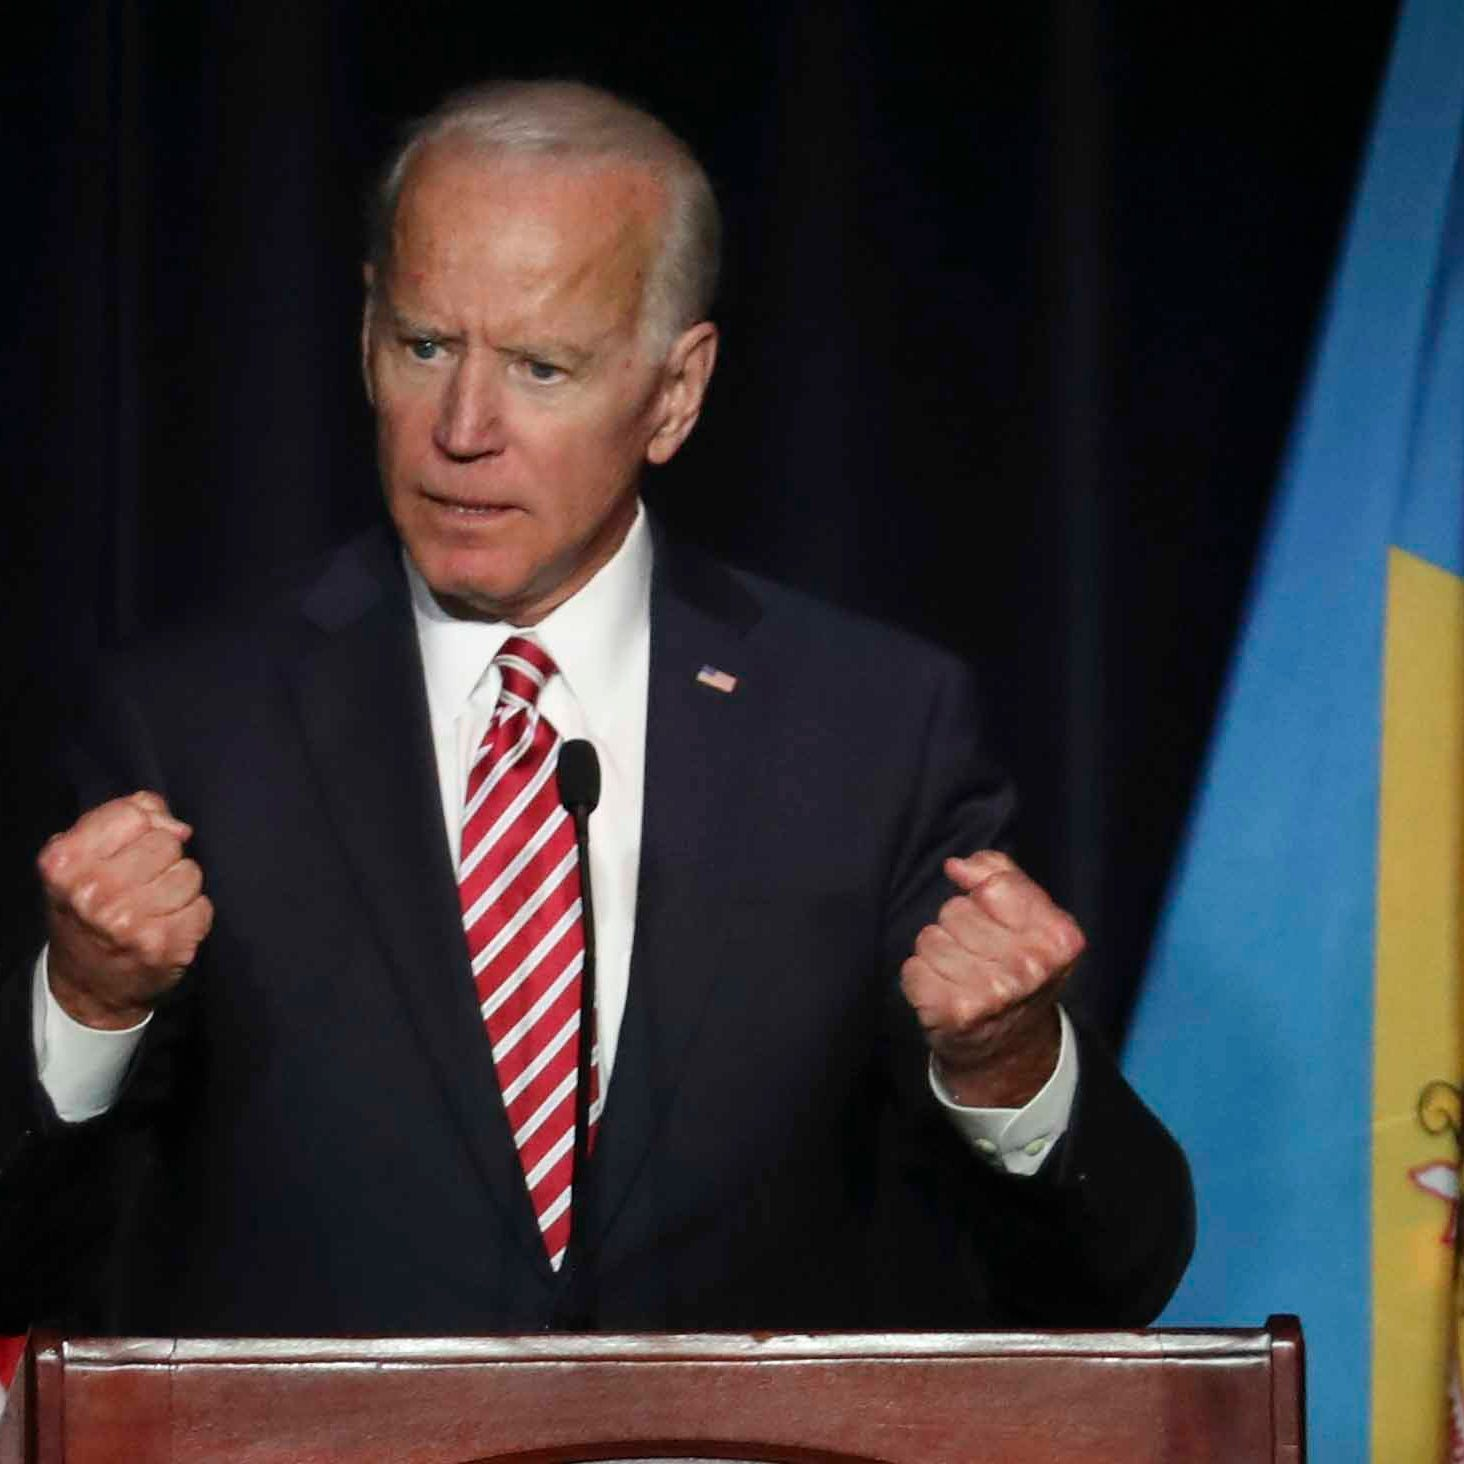 Joe Biden almost announces presidential candidacy, says he has 'most progressive record'